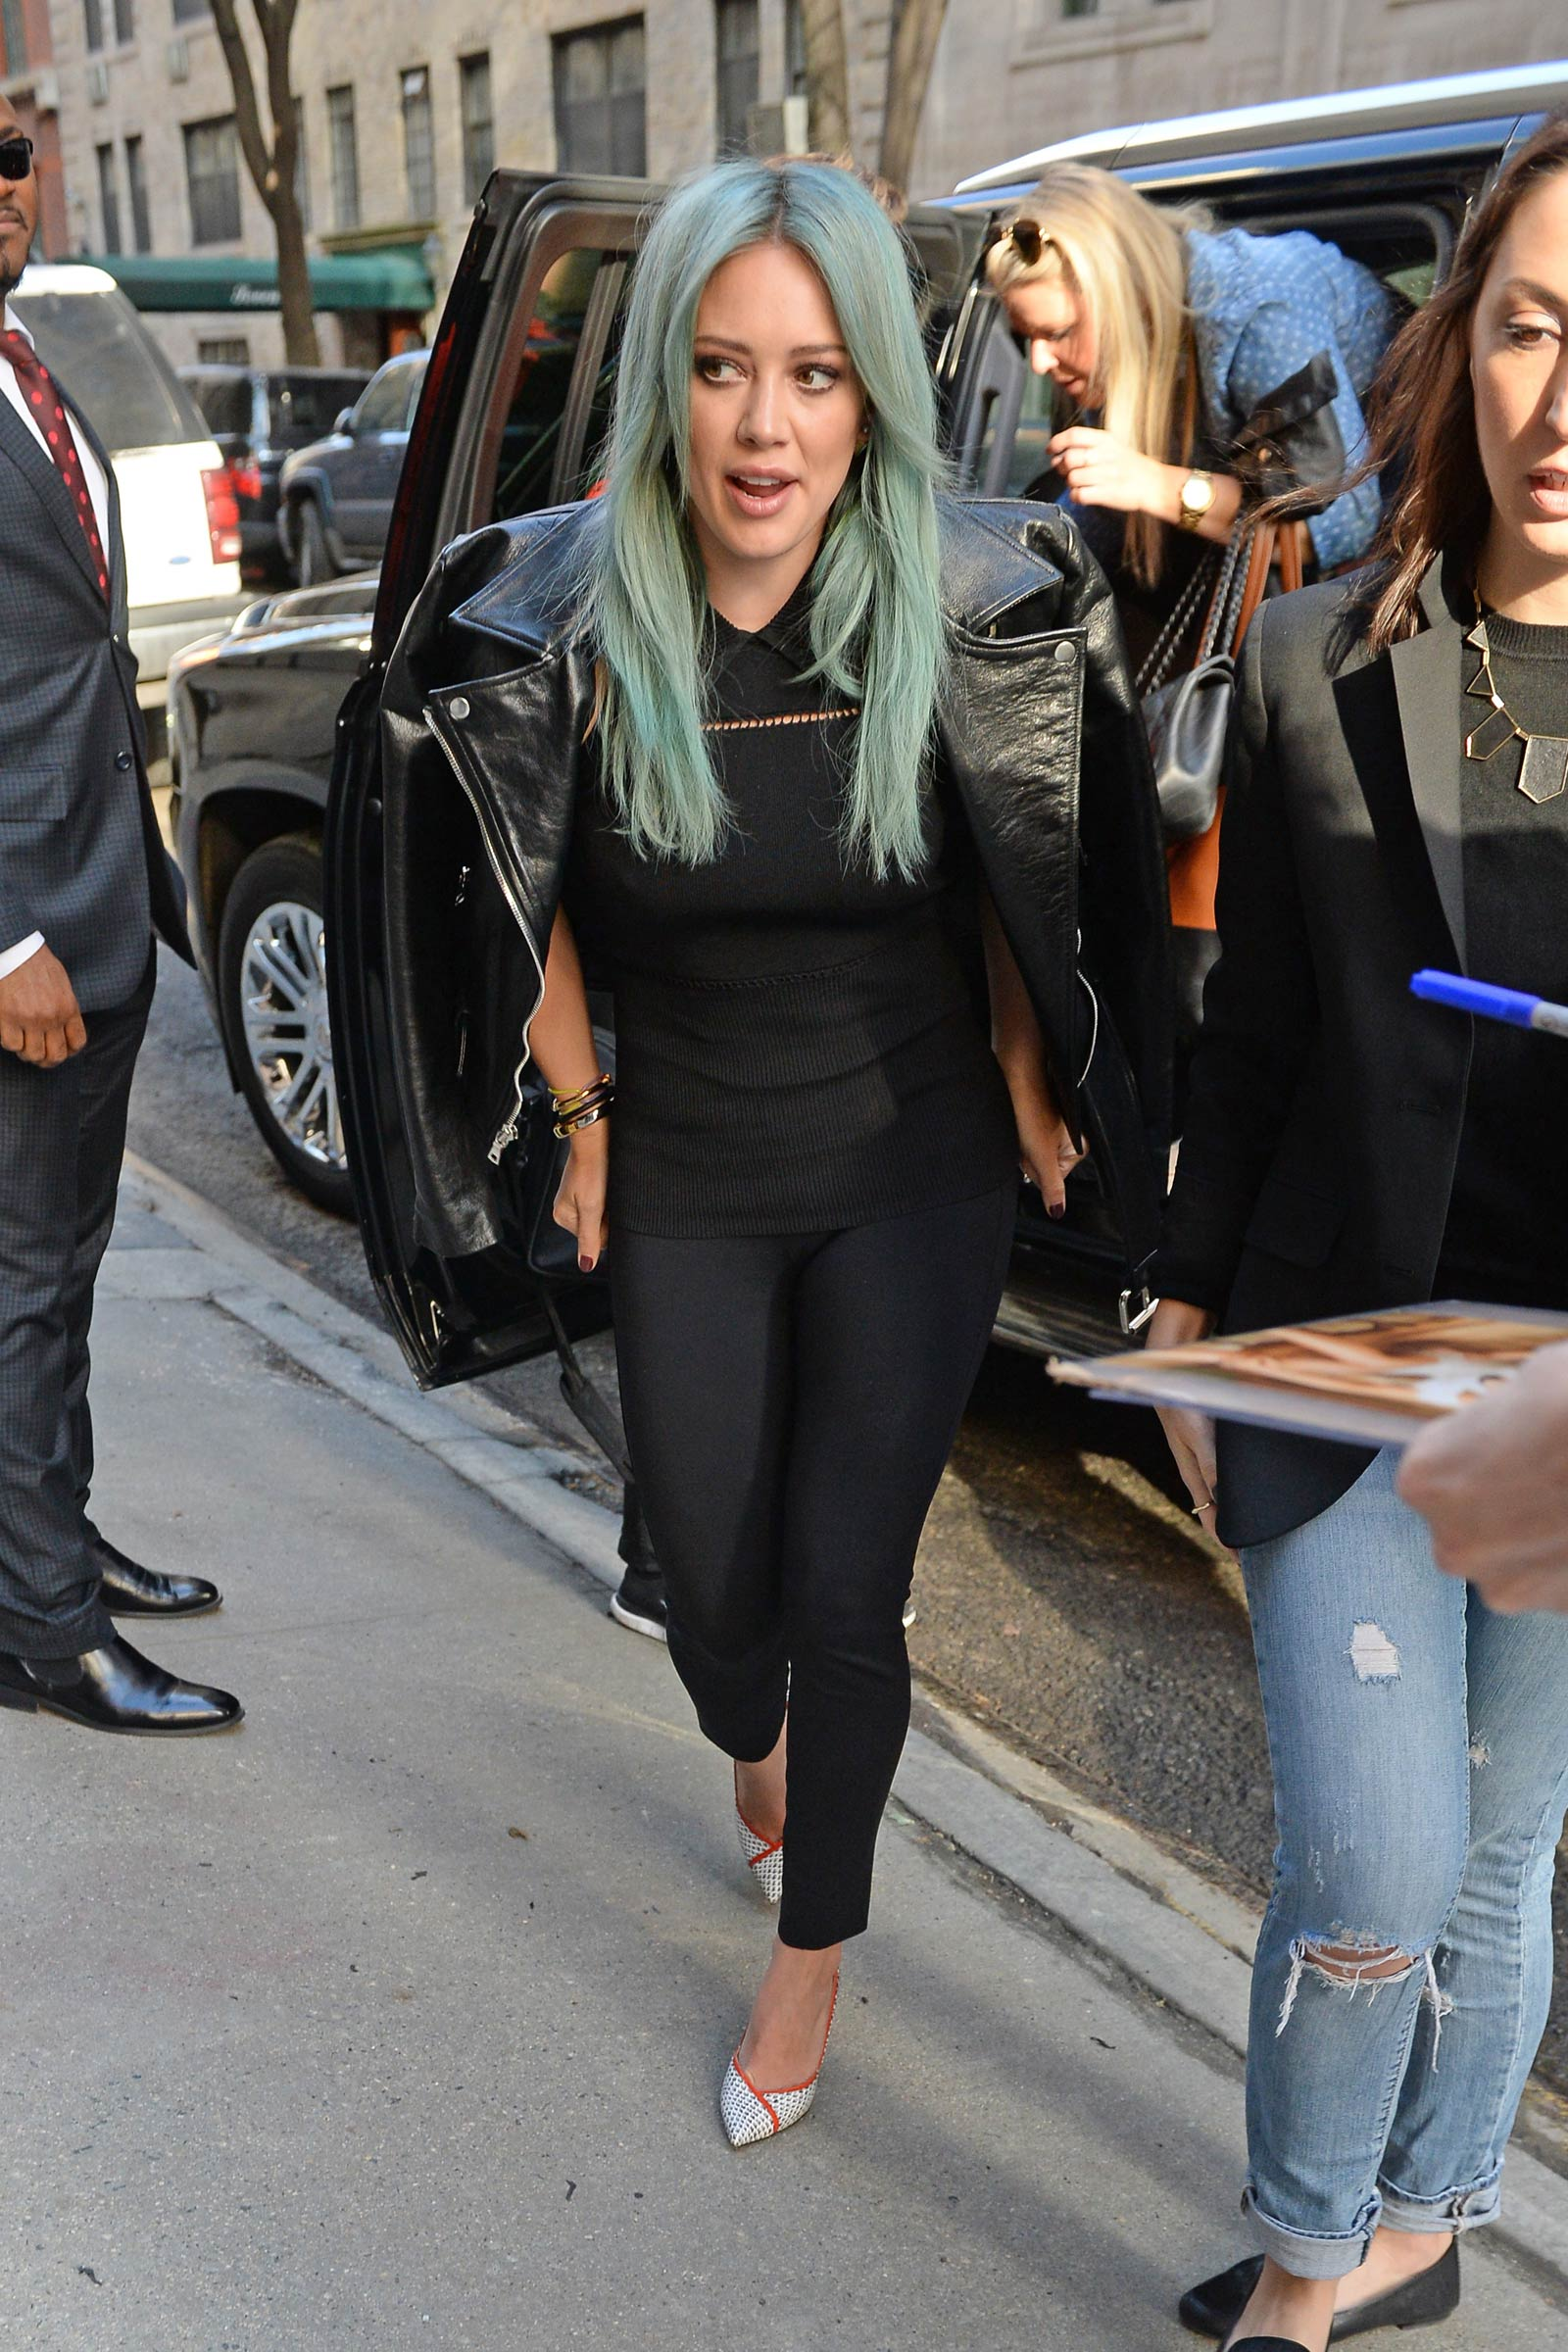 Hilary Duff arriving at The Chew in NYC